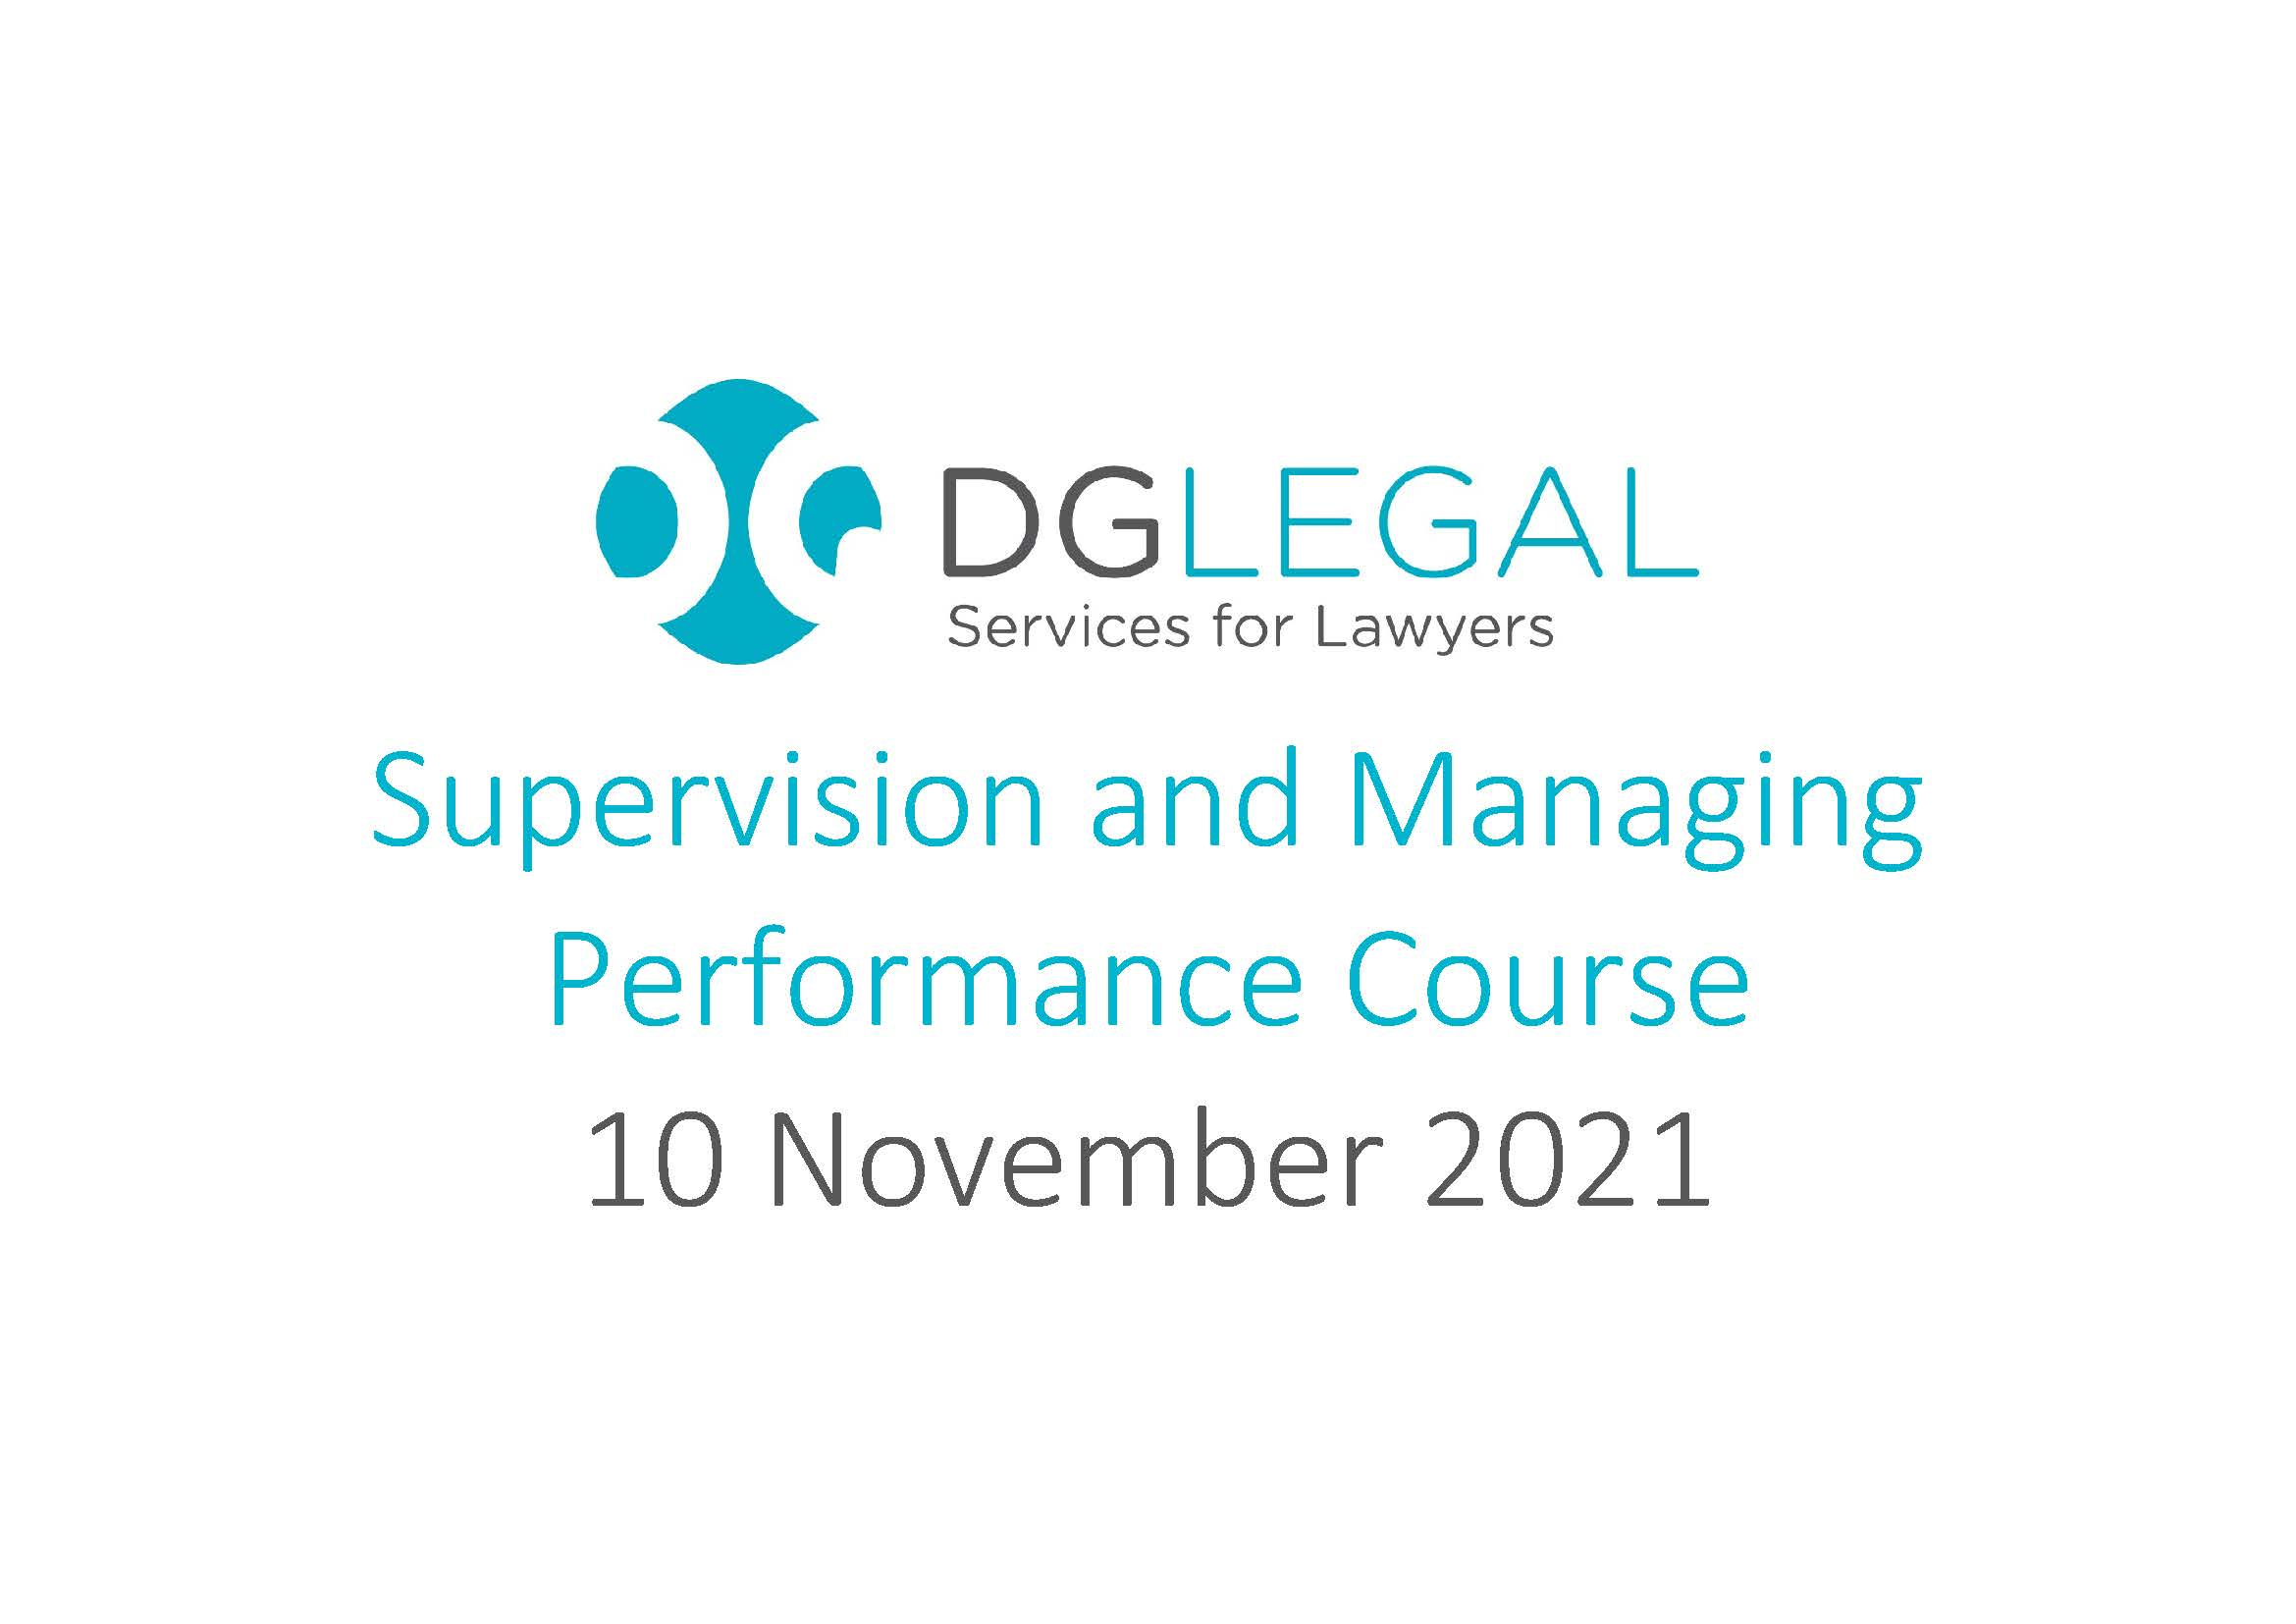 10.11.2021 - Supervision and Managing Performance Course